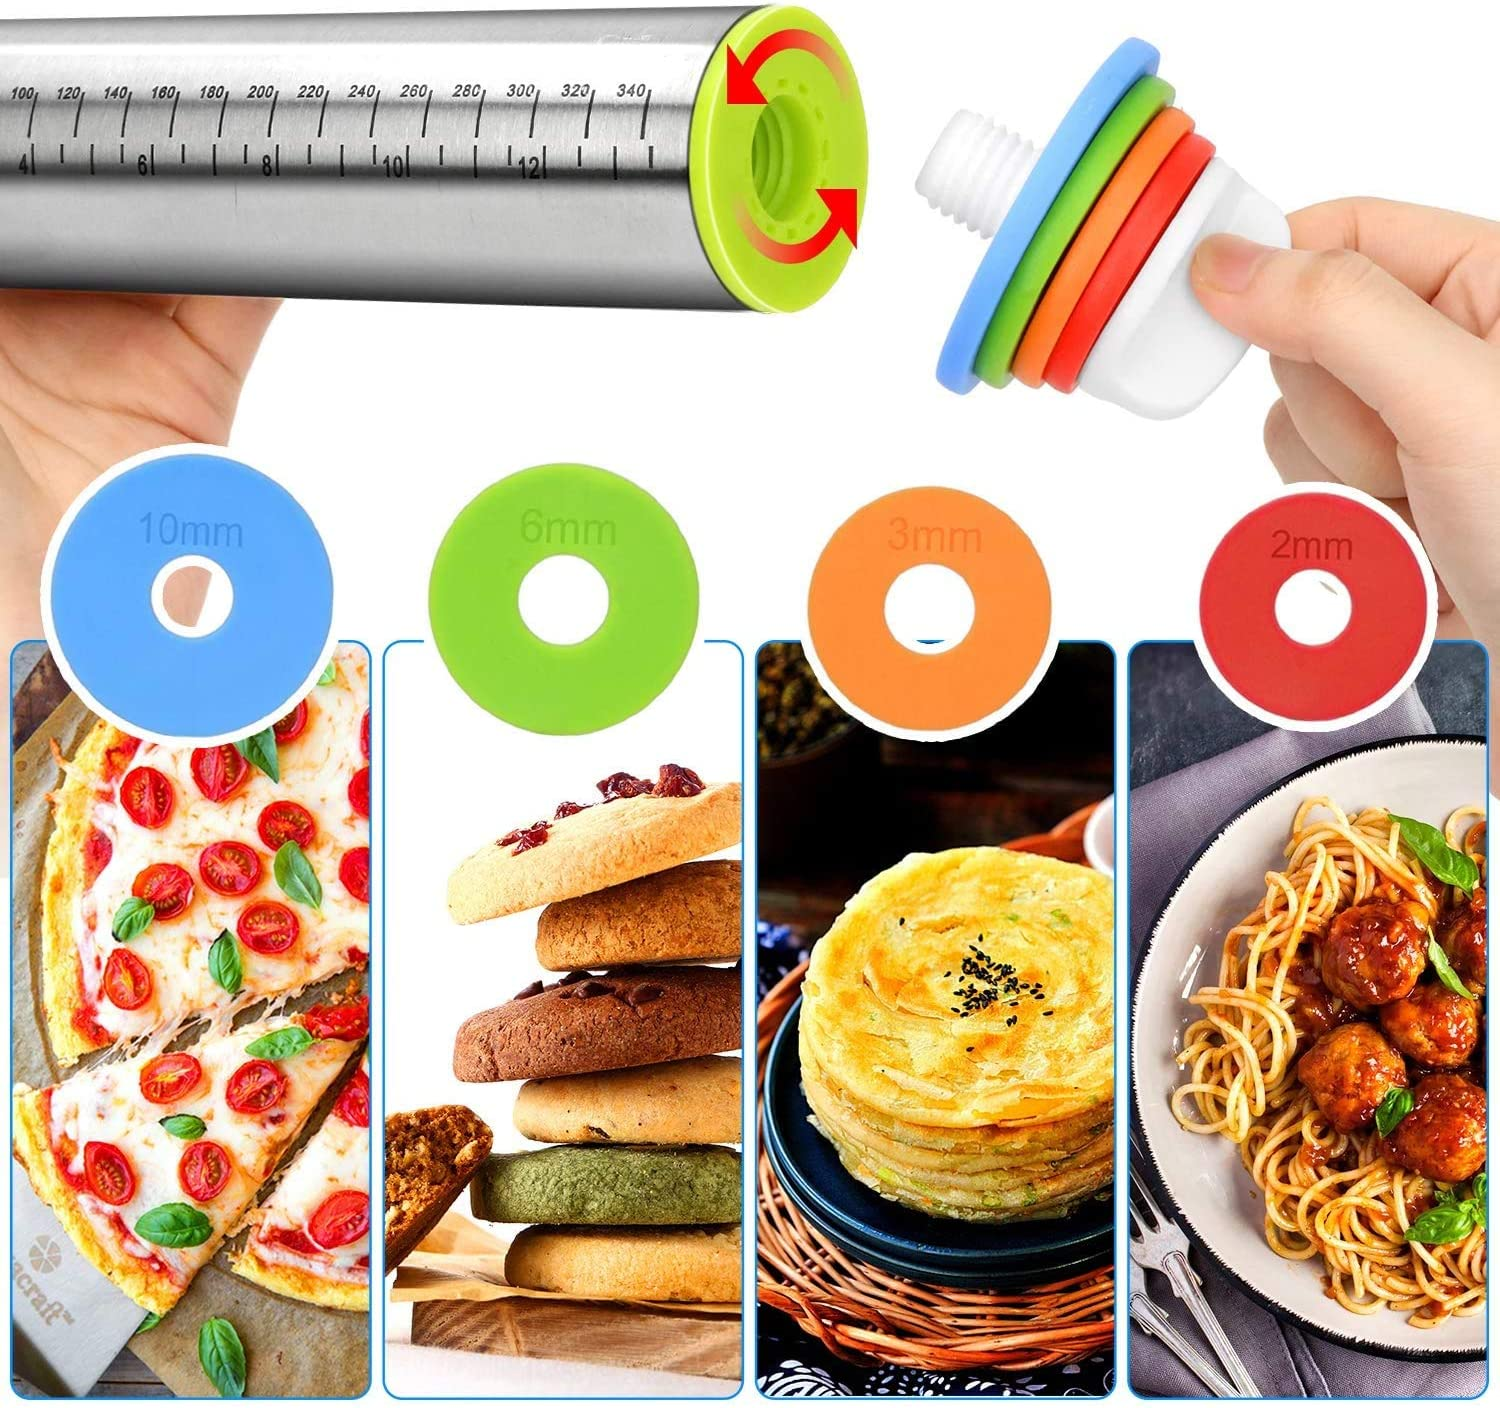 Adjustable Roller with Silicone Baking Red Mat for Baking Dough Pie Rolling Pin Stainless Steel Pasta and Cookies Pastries Pizza